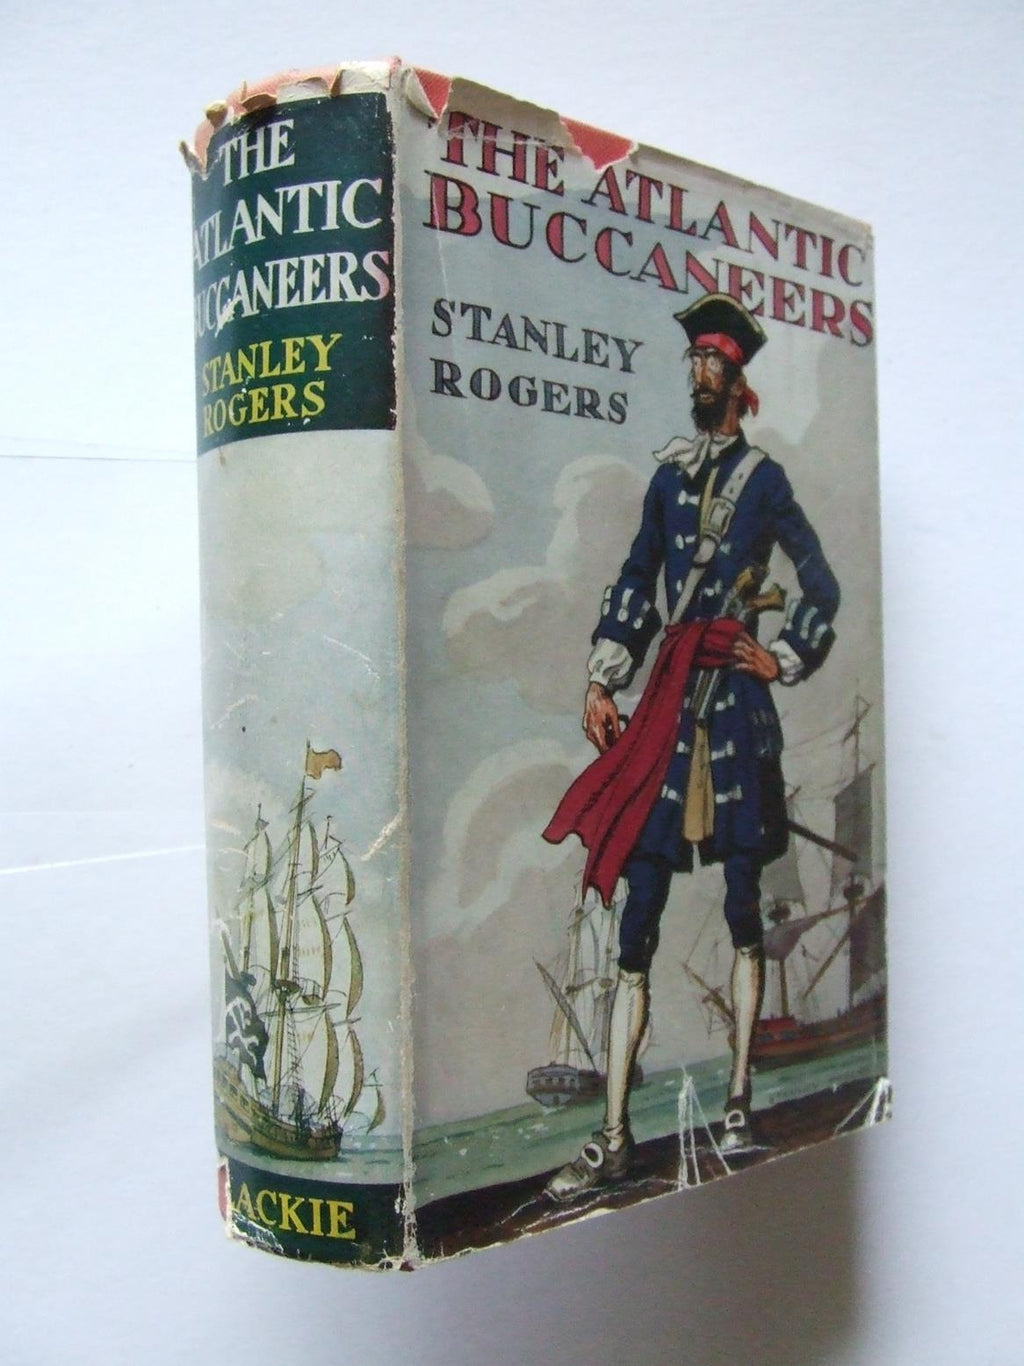 The Atlantic Buccaneers